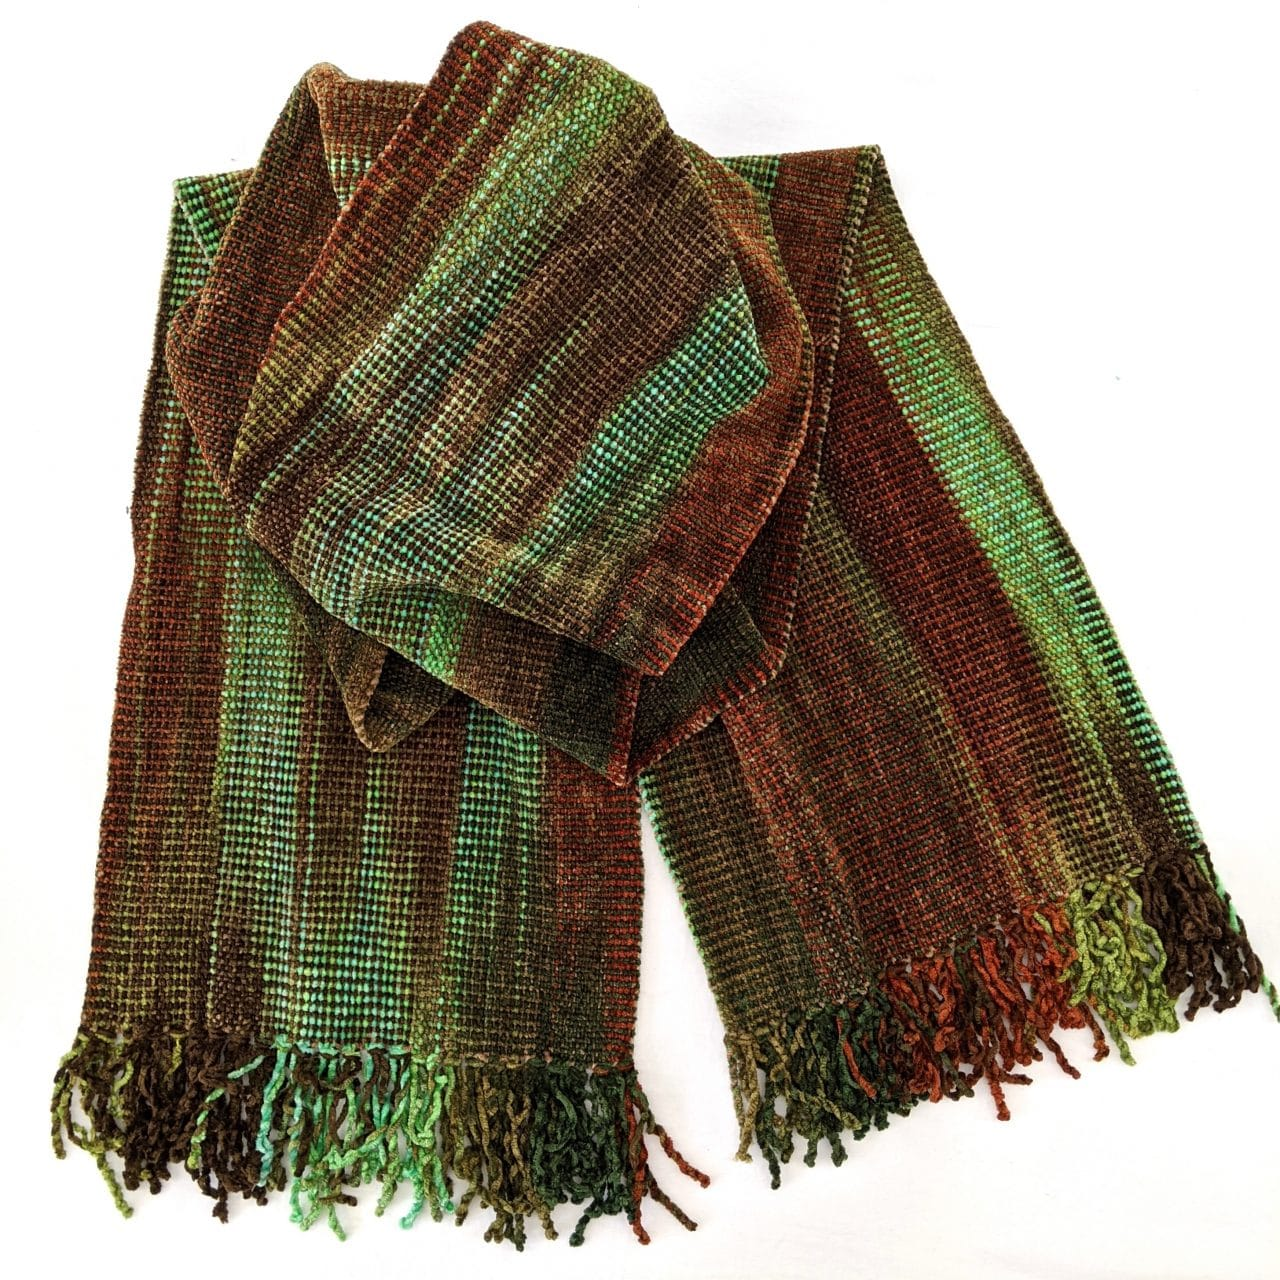 Turquoise, Brick, Green, Brown - Bamboo Chenille Handwoven Scarf 8 x 68